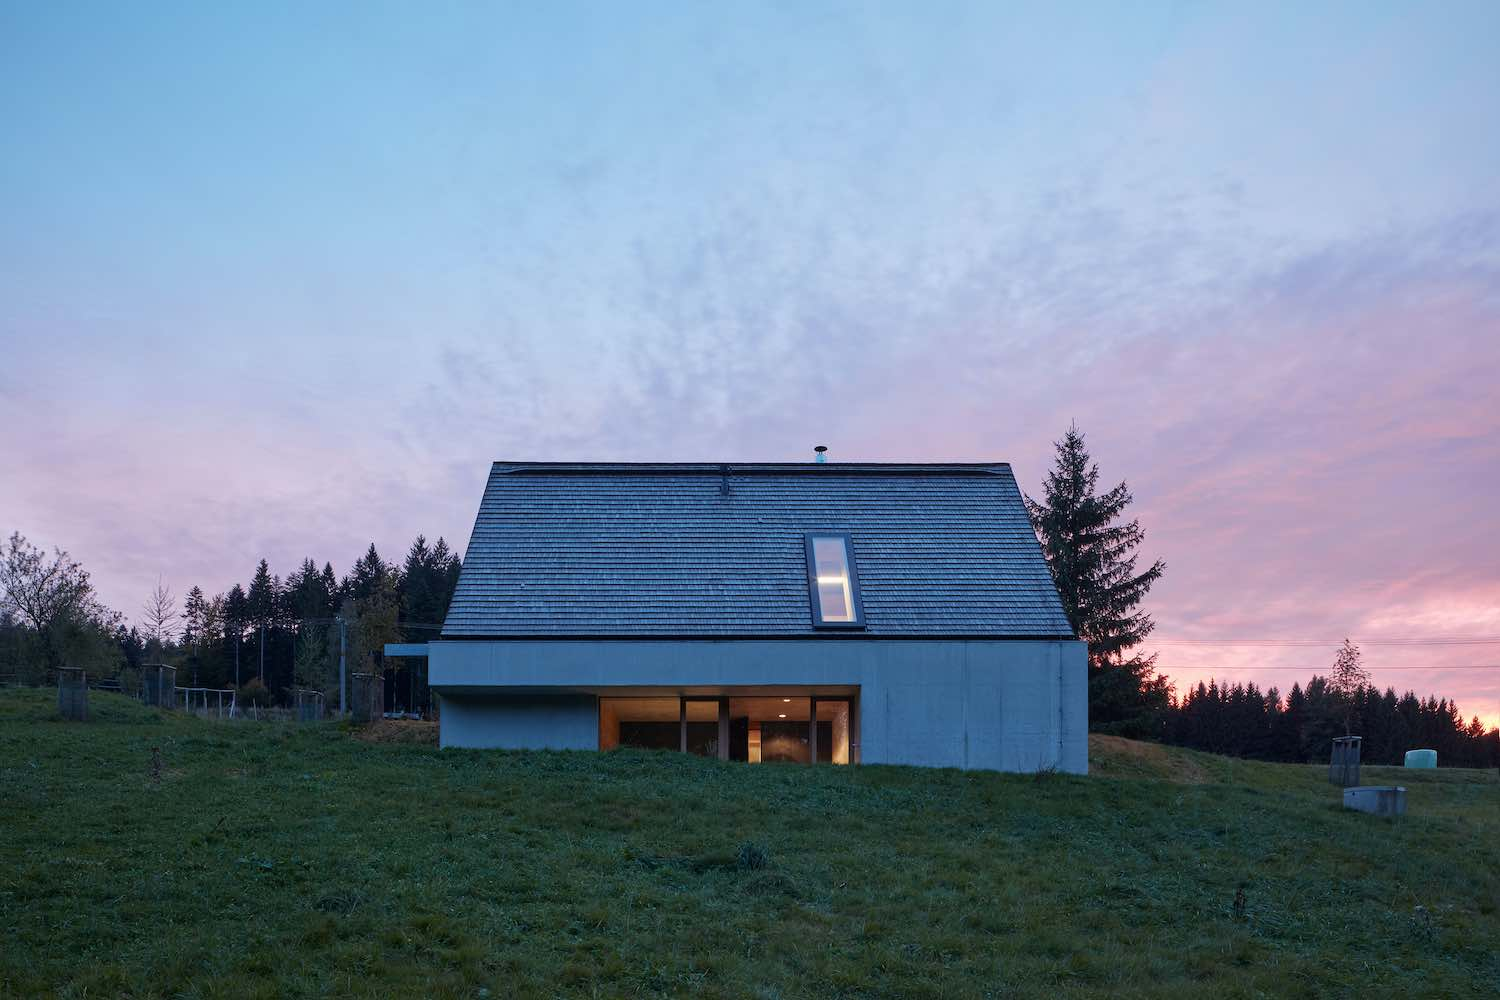 the cabin facade captured at the sunset